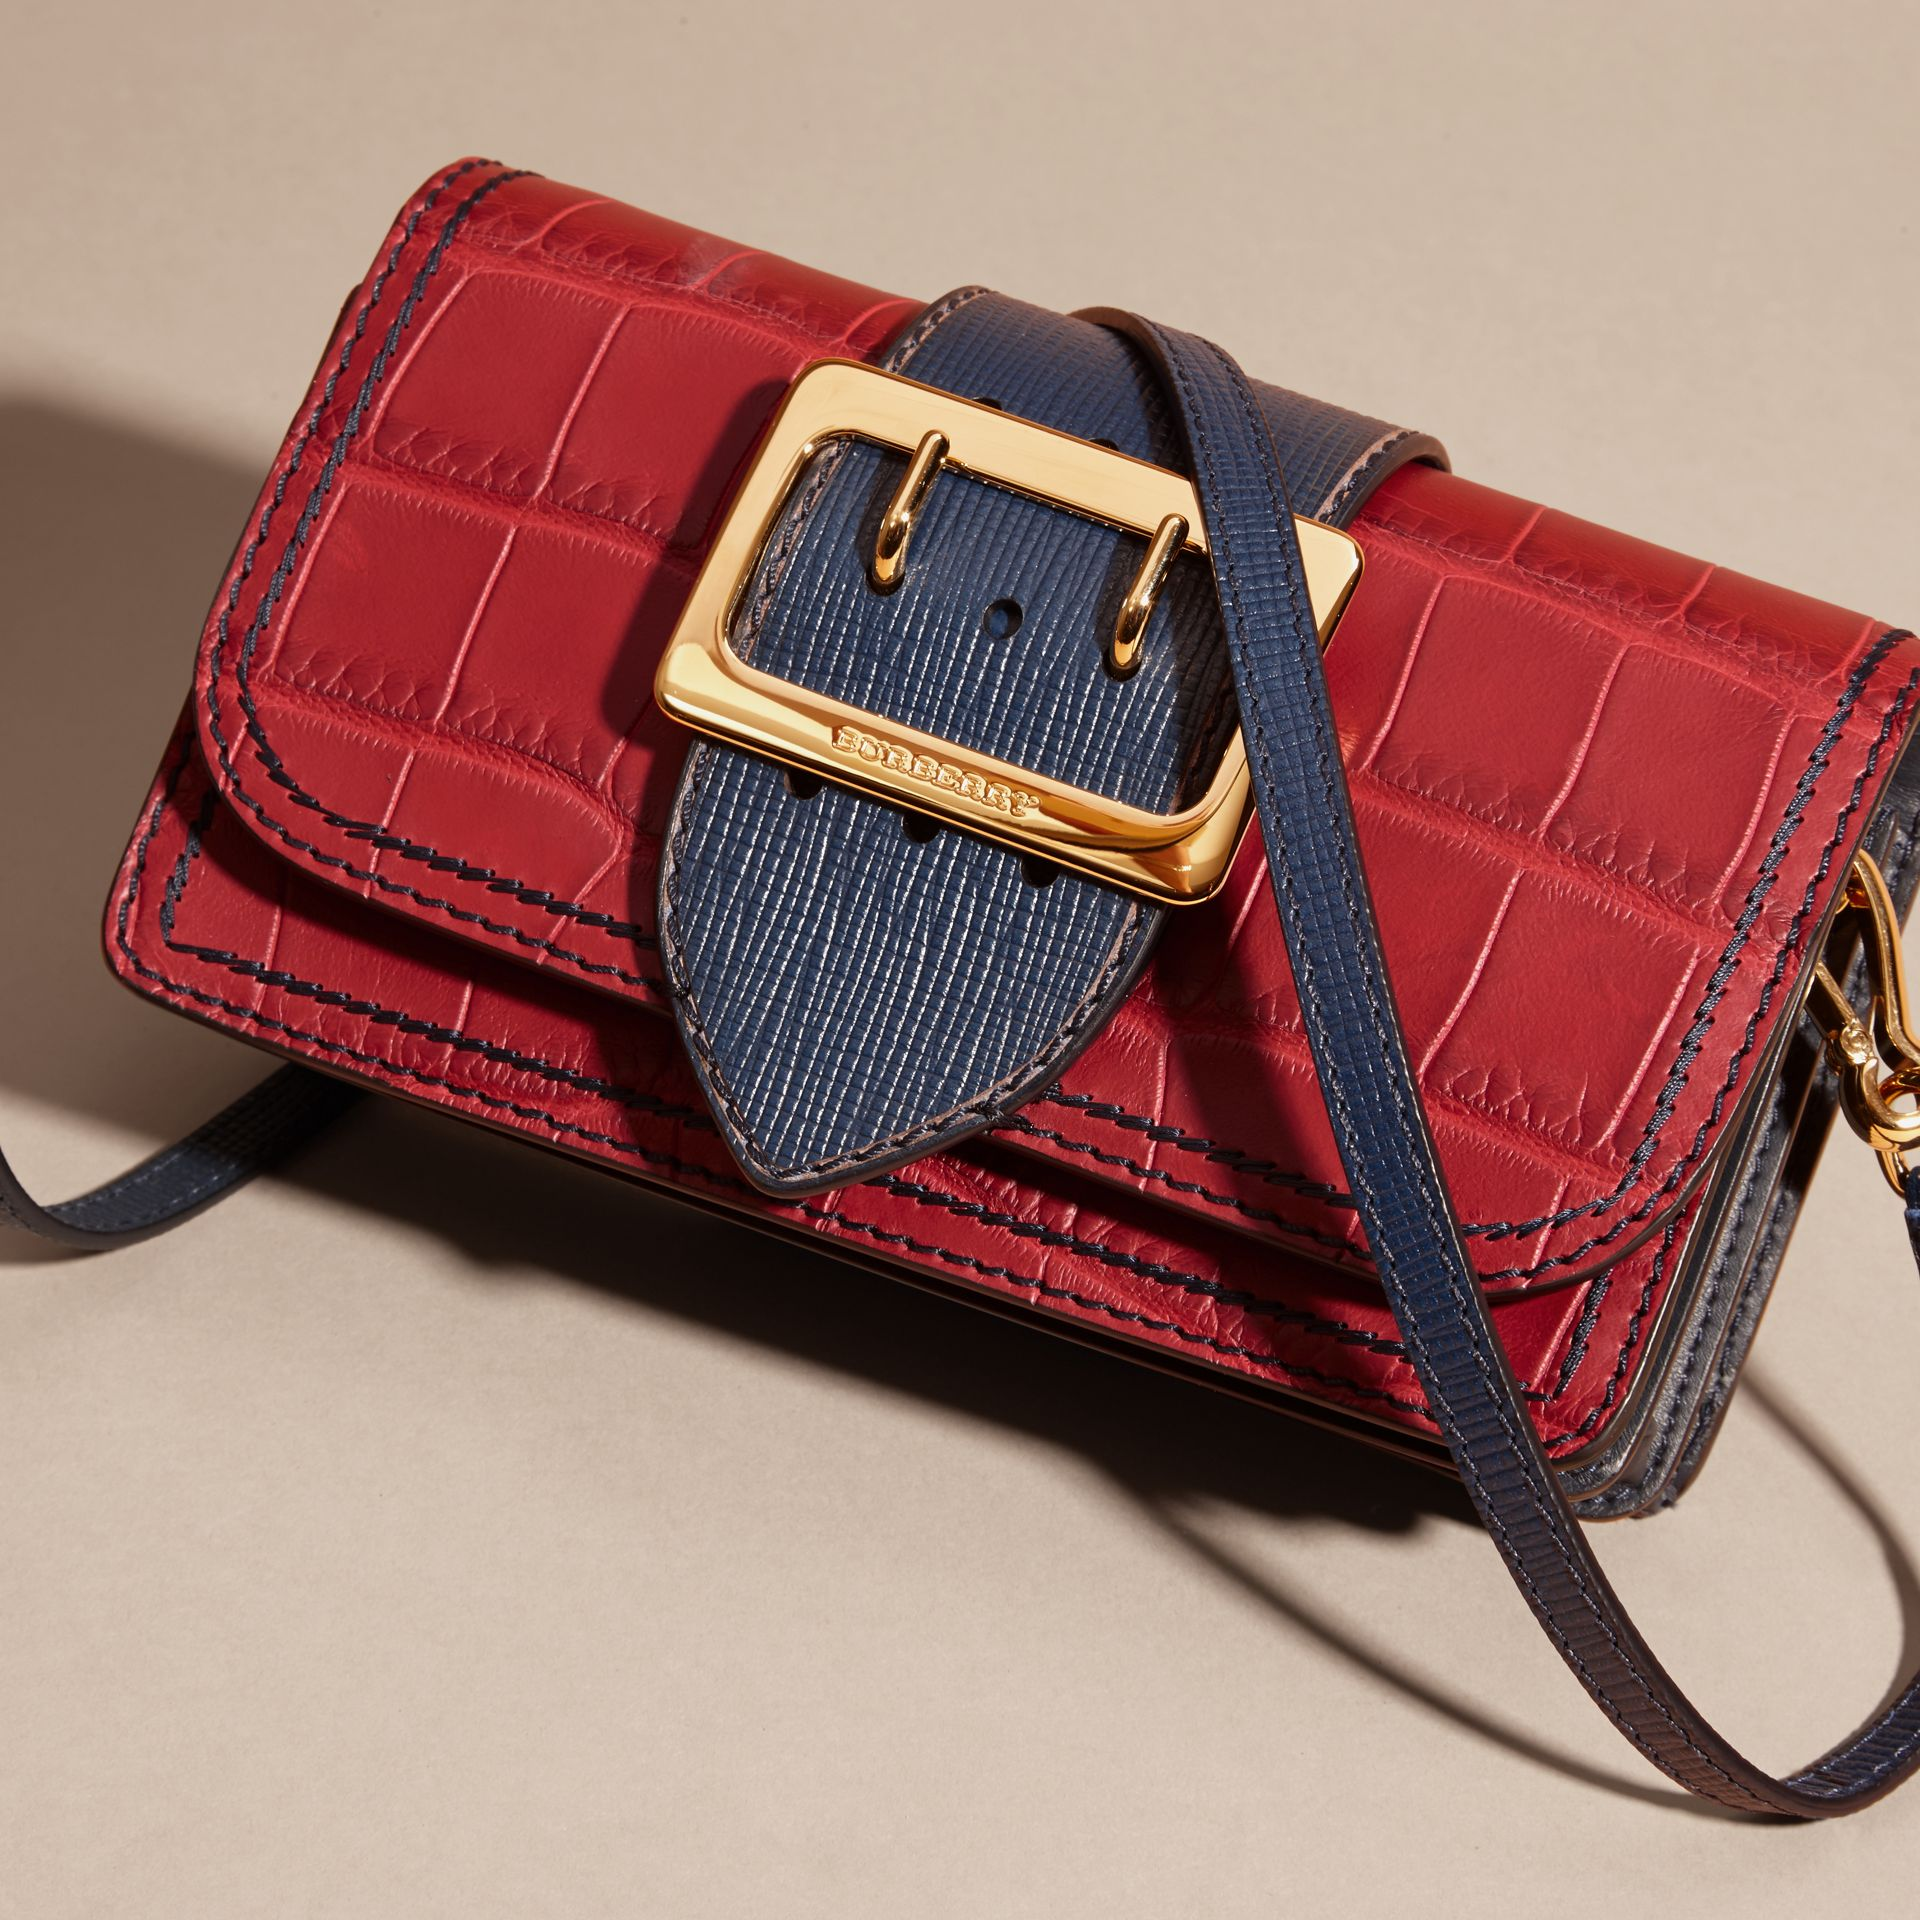 Garnet red/sapphire The Small Buckle Bag in Alligator and Leather Garnet Red/sapphire - gallery image 8